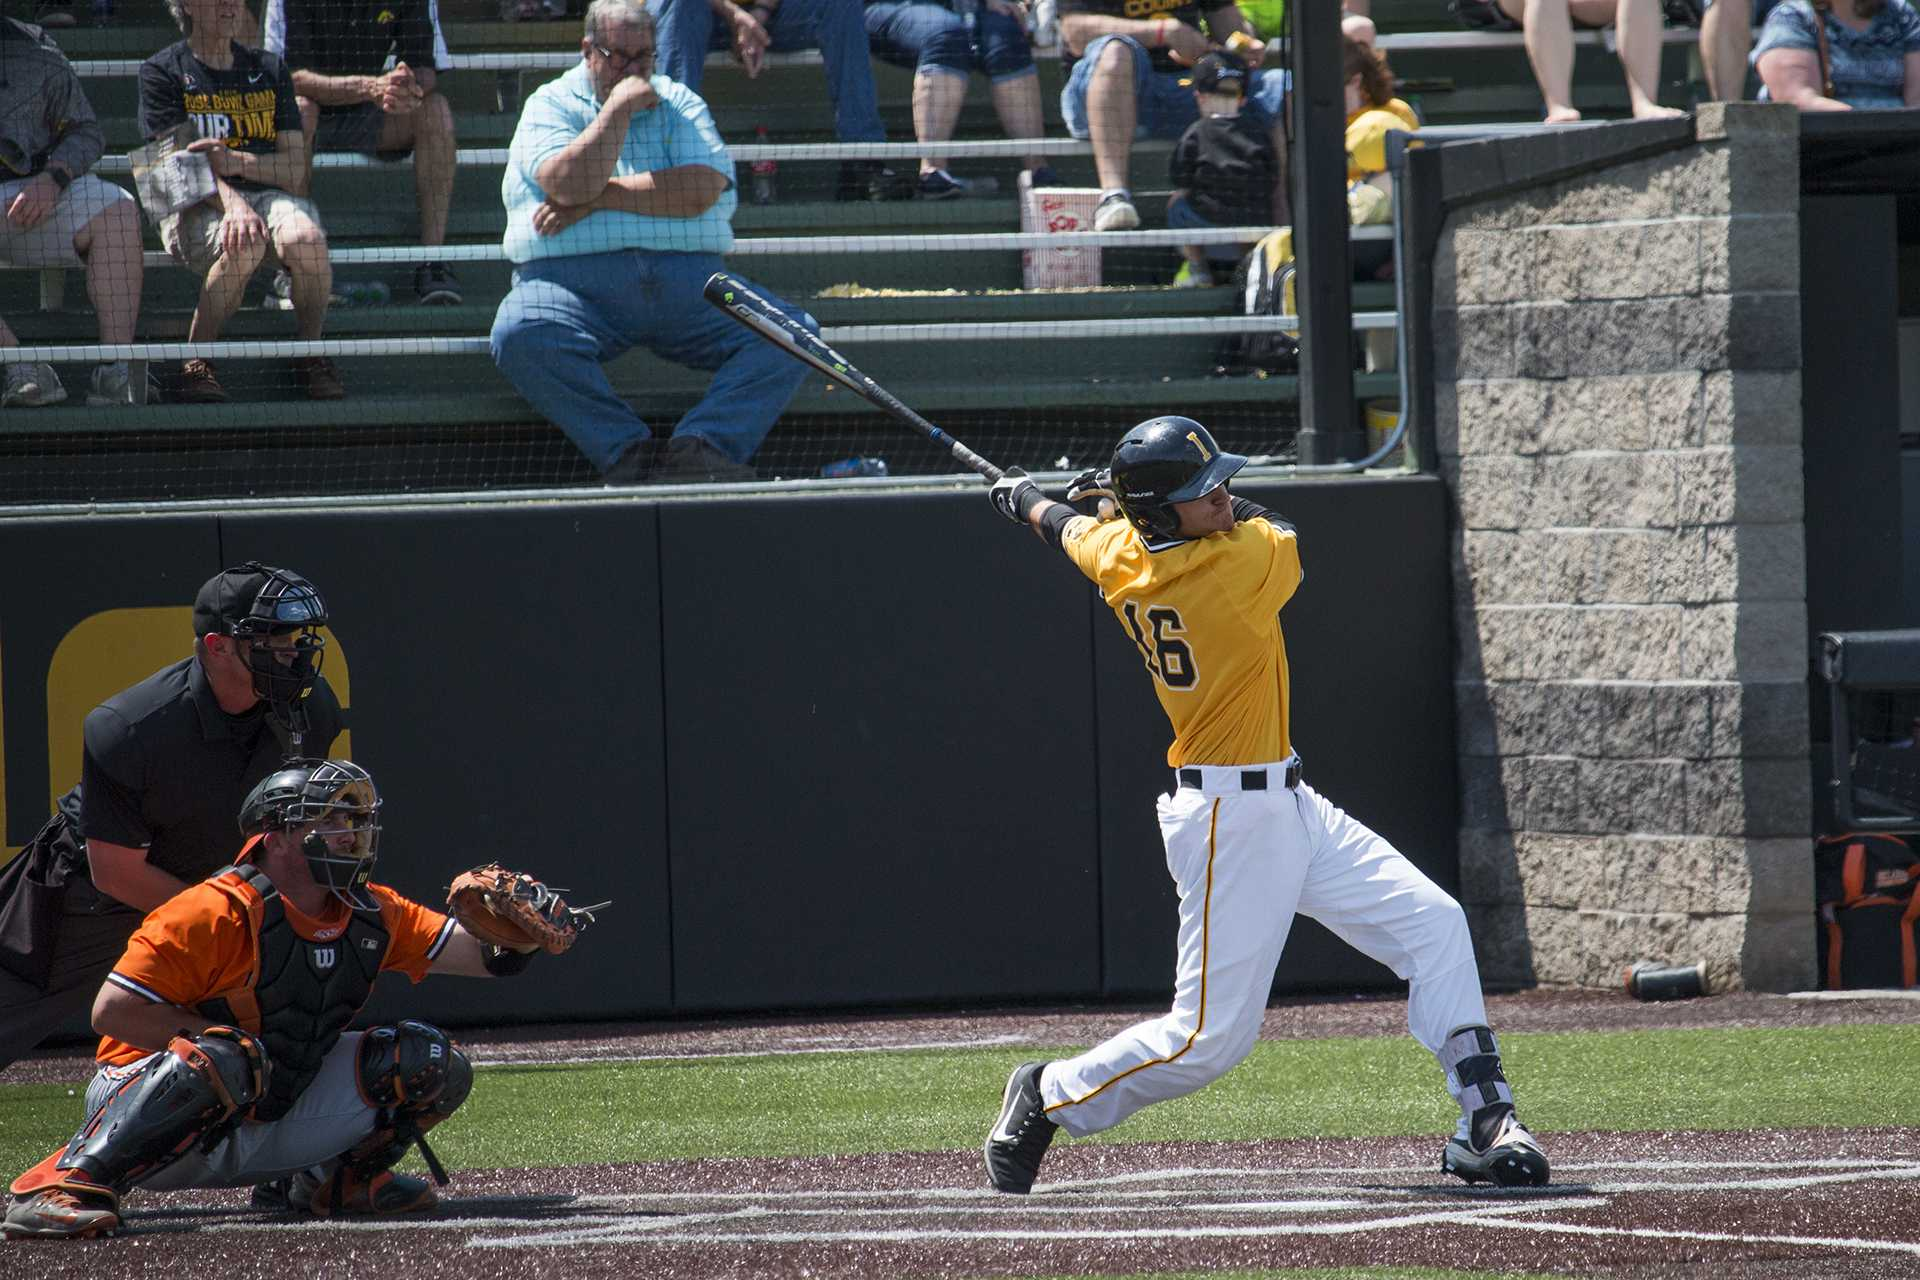 Iowa infielder Tanner Wetrich swings at the pitch during baseball Iowa vs. Oklahoma State at Duane Banks Field on May 6, 2018. The Hawkeyes defeated the Cowboys 11-3.  (Katina Zentz/The Daily Iowan)